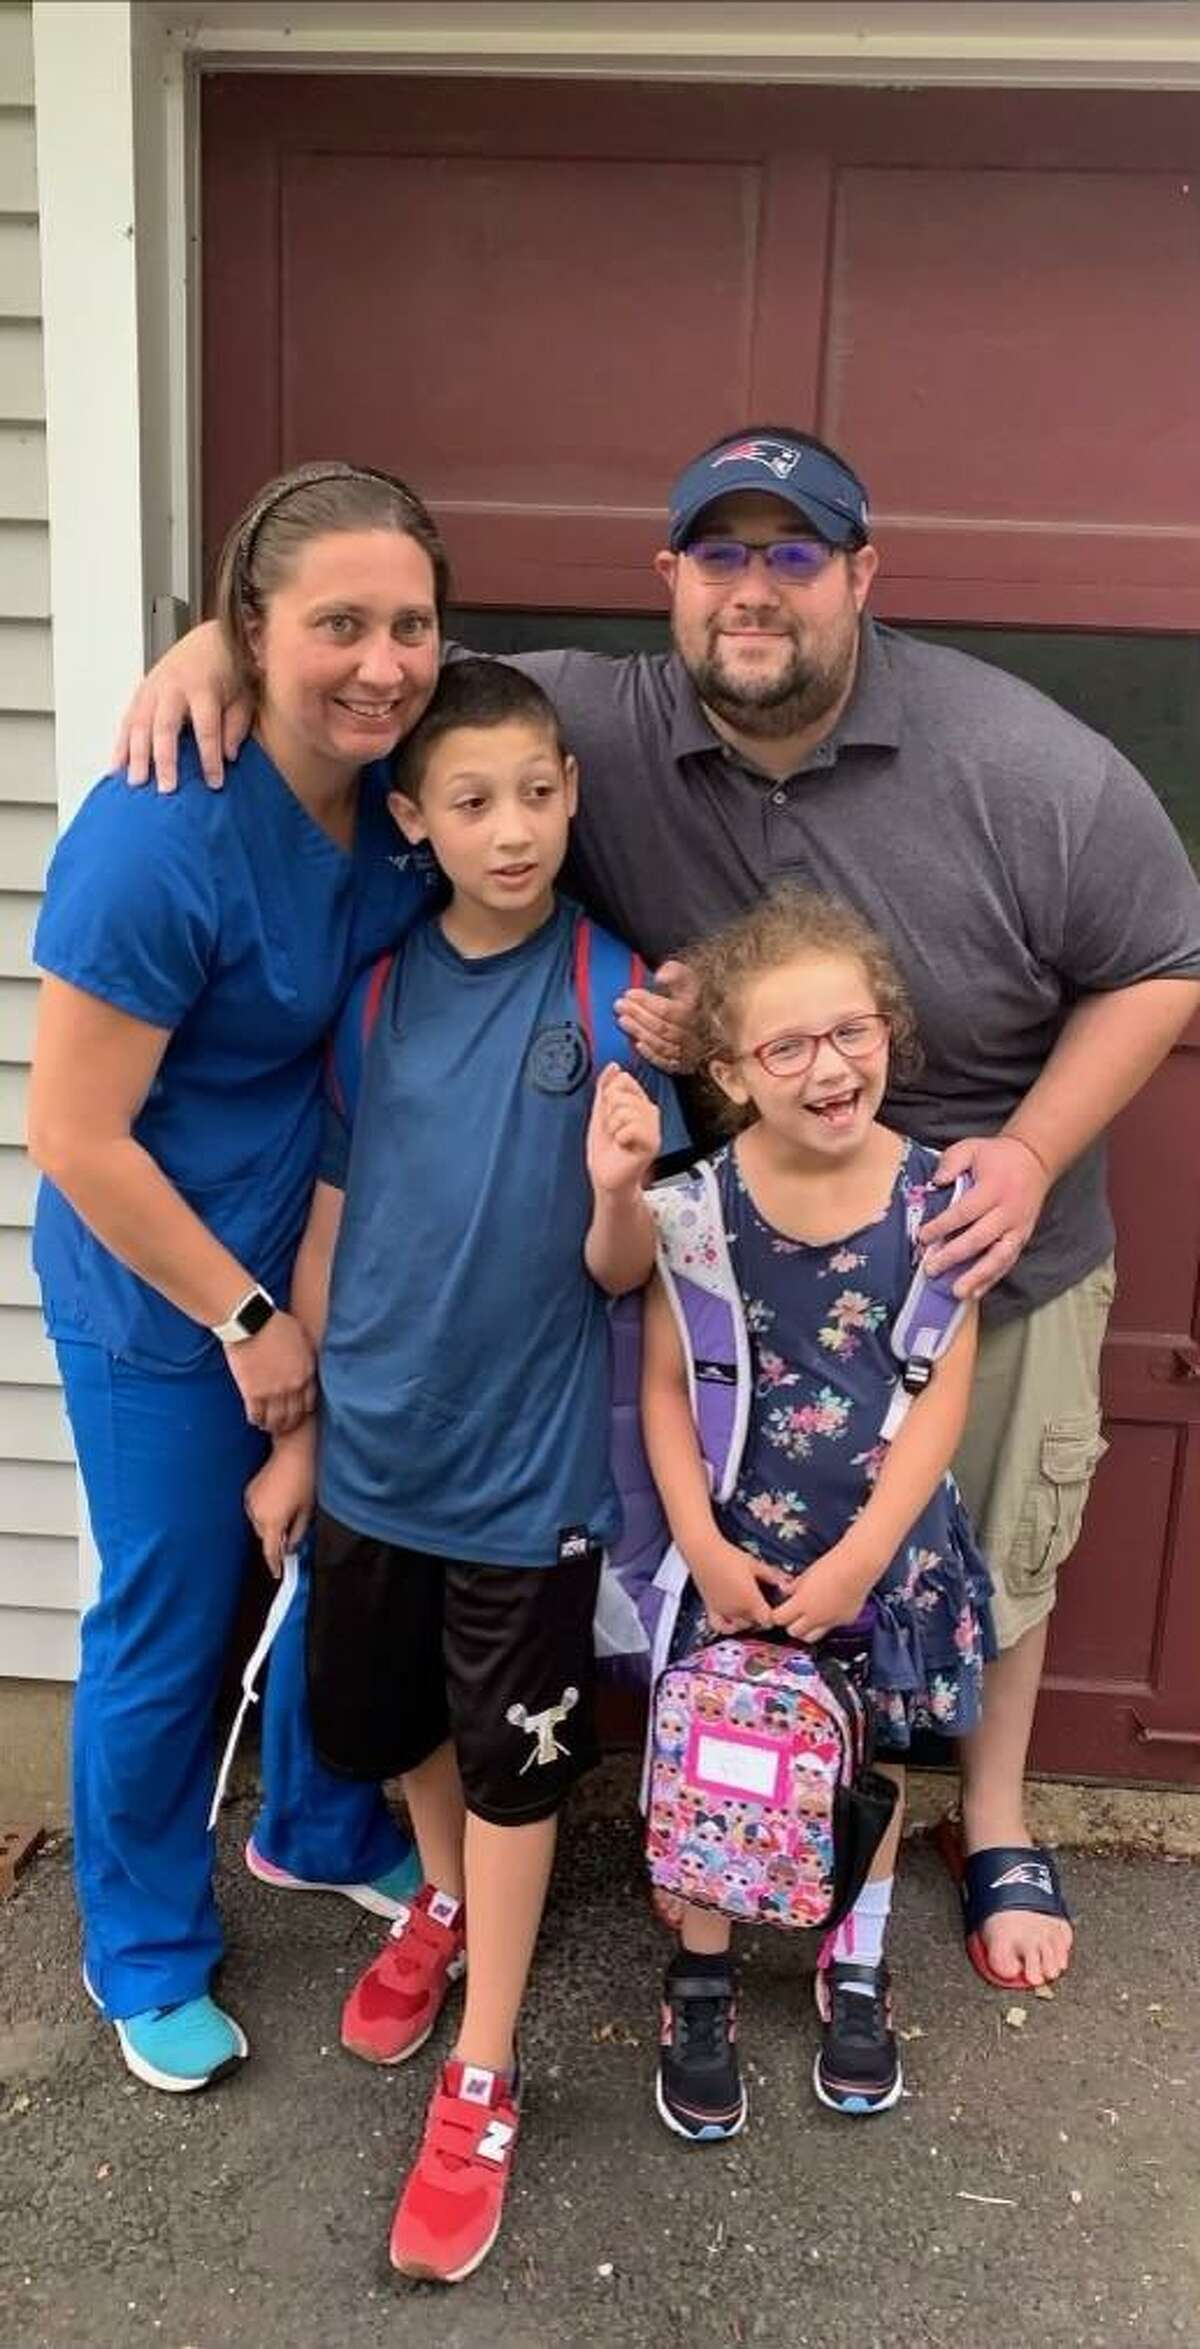 Ashley Balestriere, with husband Philip, hopes a vaccine trial can help her children Jimmy, 10, and Amy Ruth, 7, have a normal childhood.